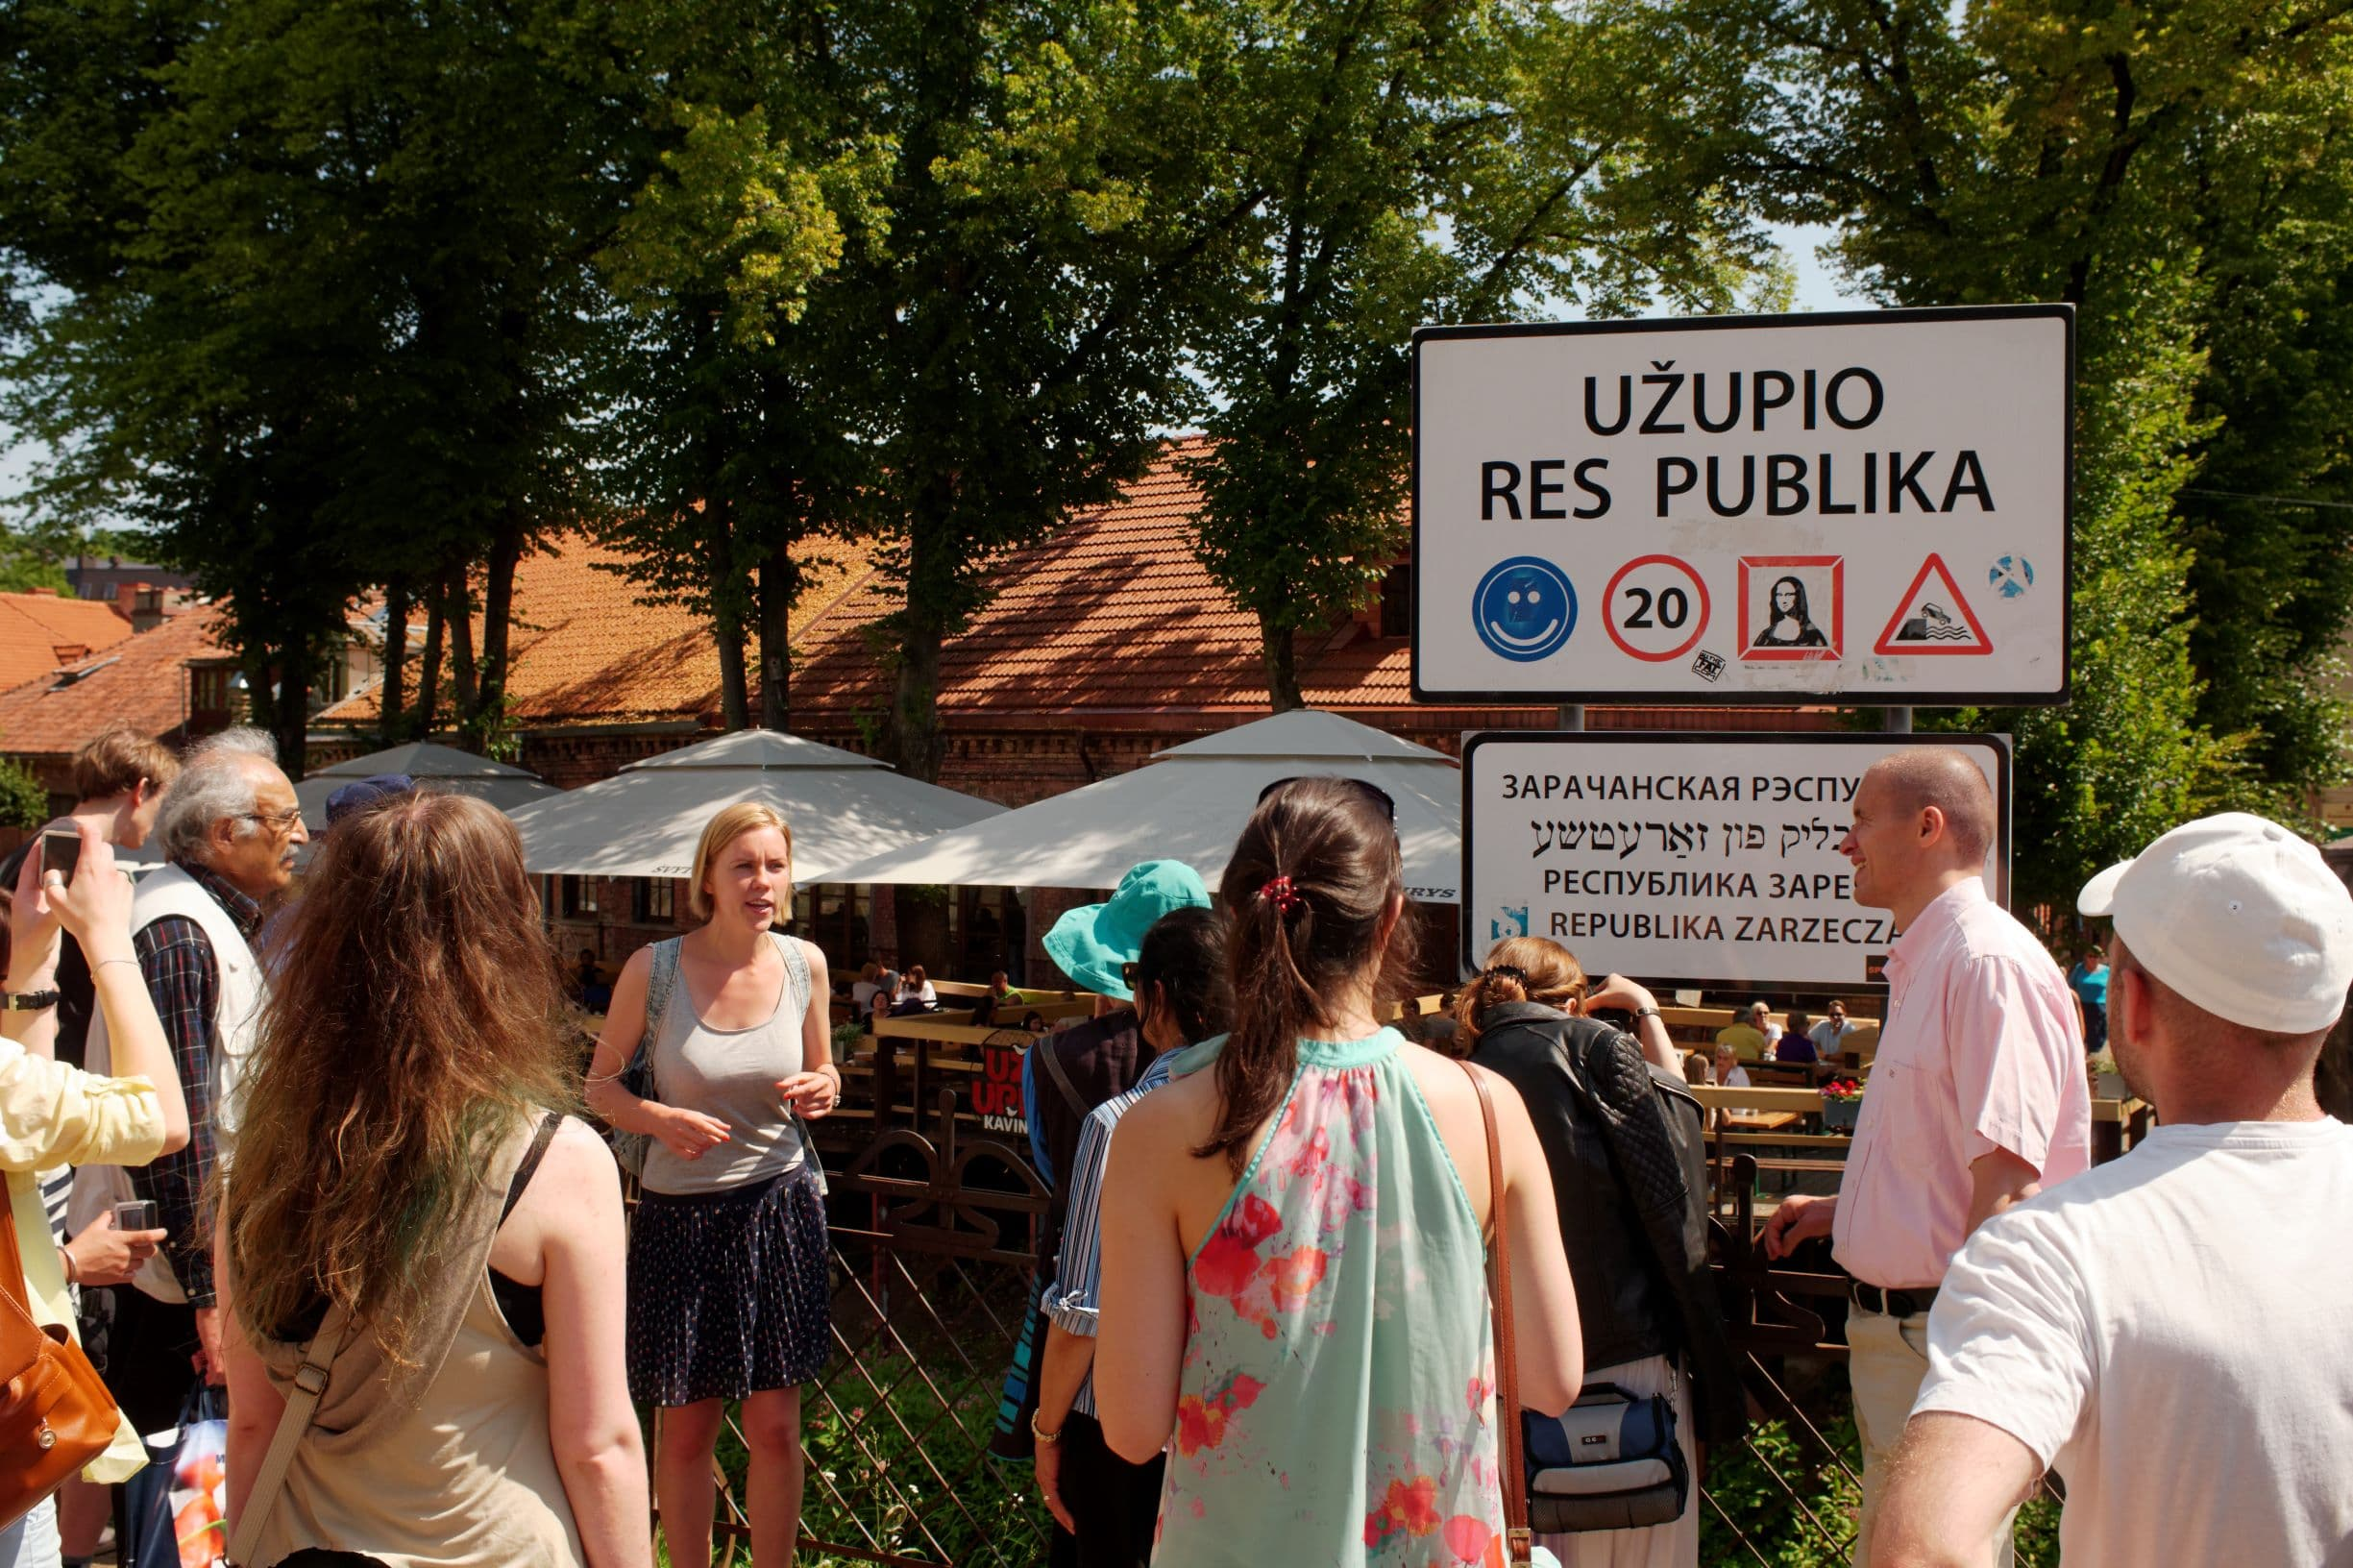 Uzupis neighbourhood to stay in Vilnius - a sign near the entrance